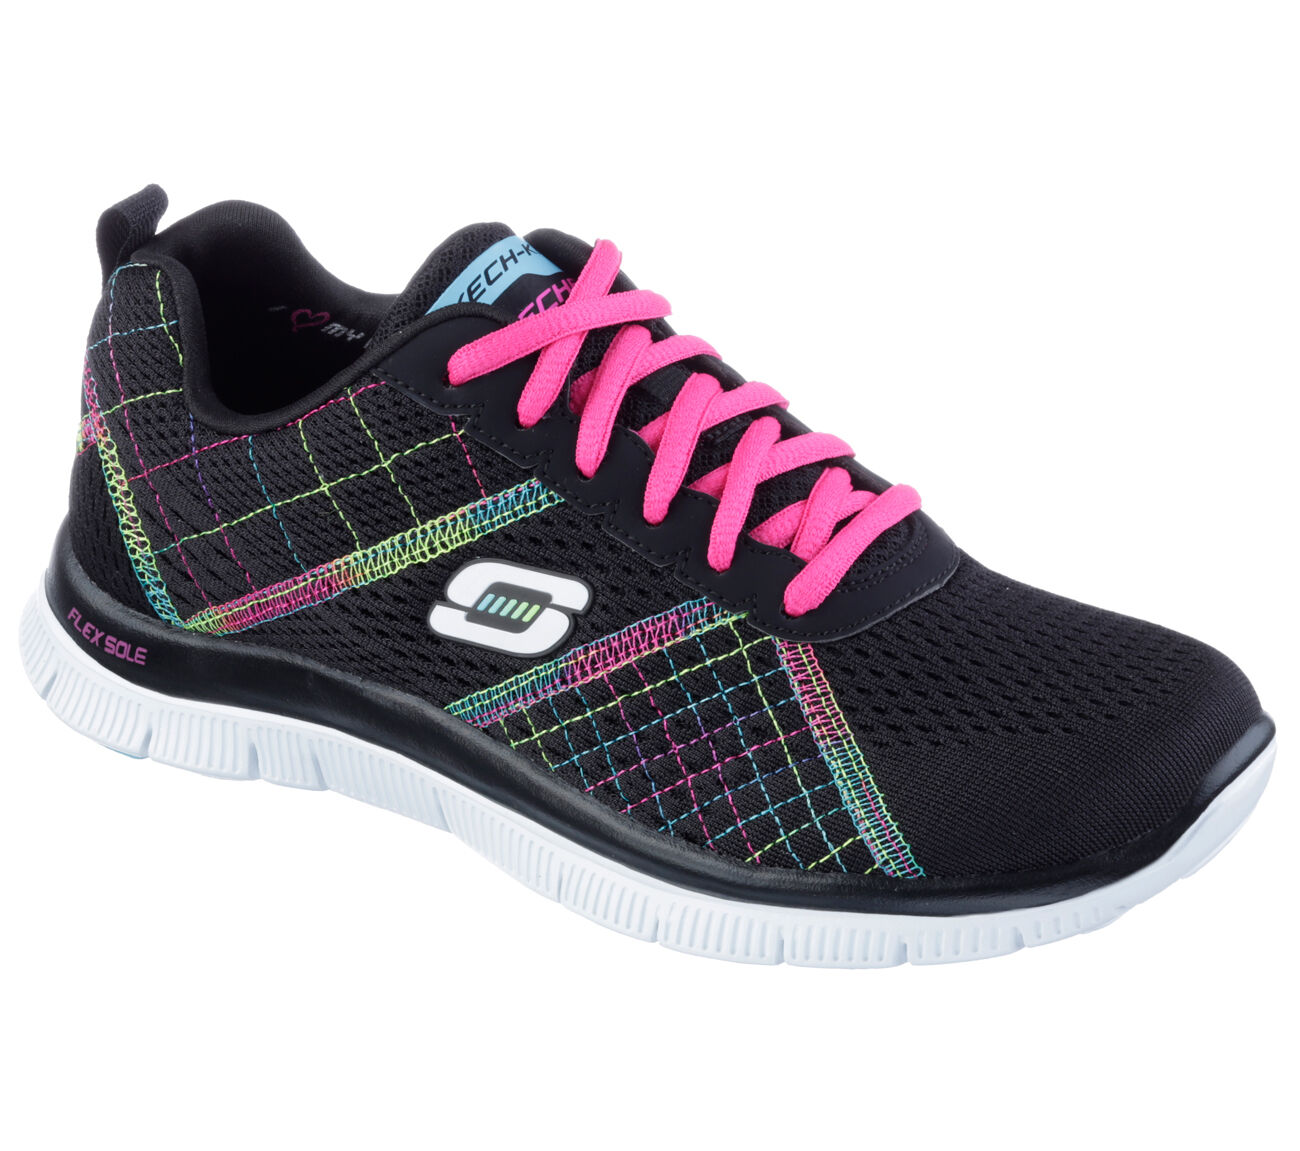 Skechers Memory Foam Flex Appeal Totally Fab Womens Running shoes Trainers 12072